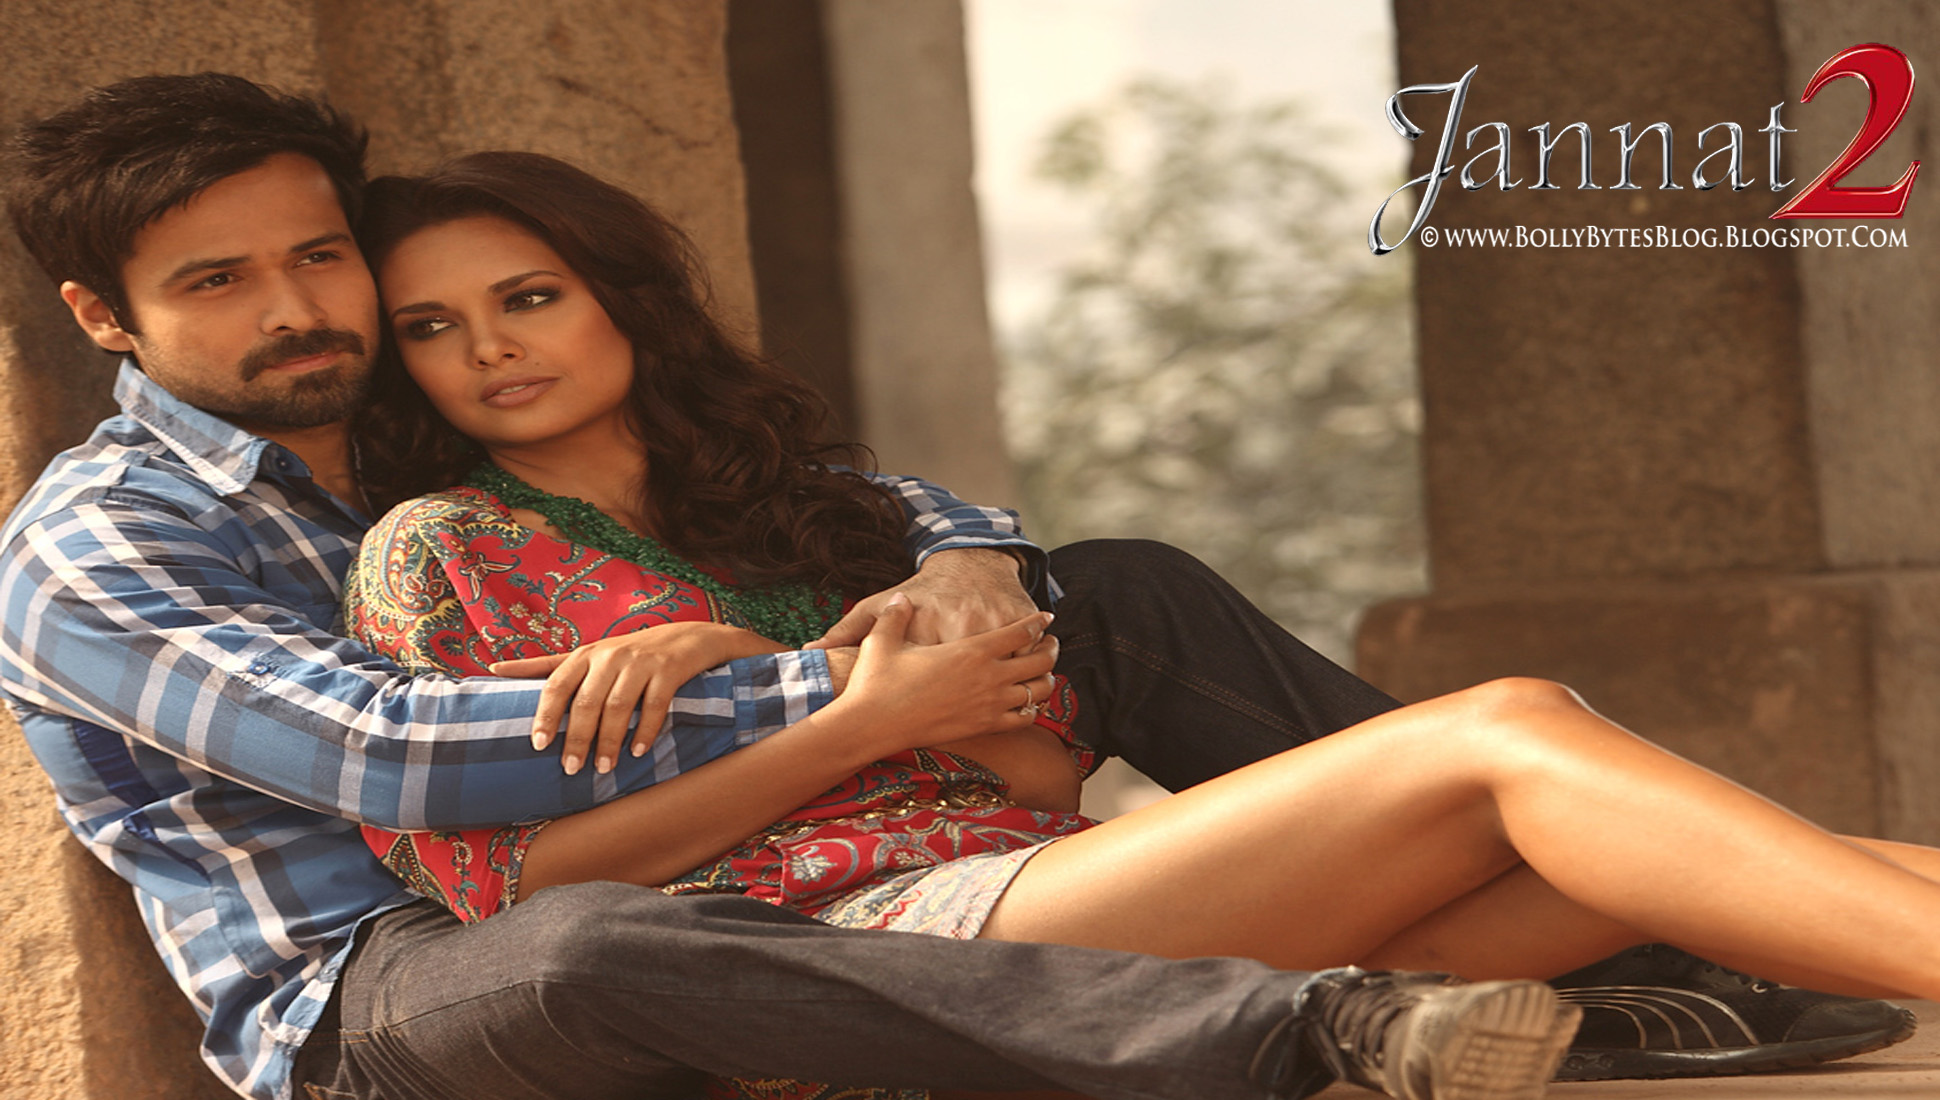 Emraan hashmi and esha gupta hot jannat wallpaper indian cinema pic 4